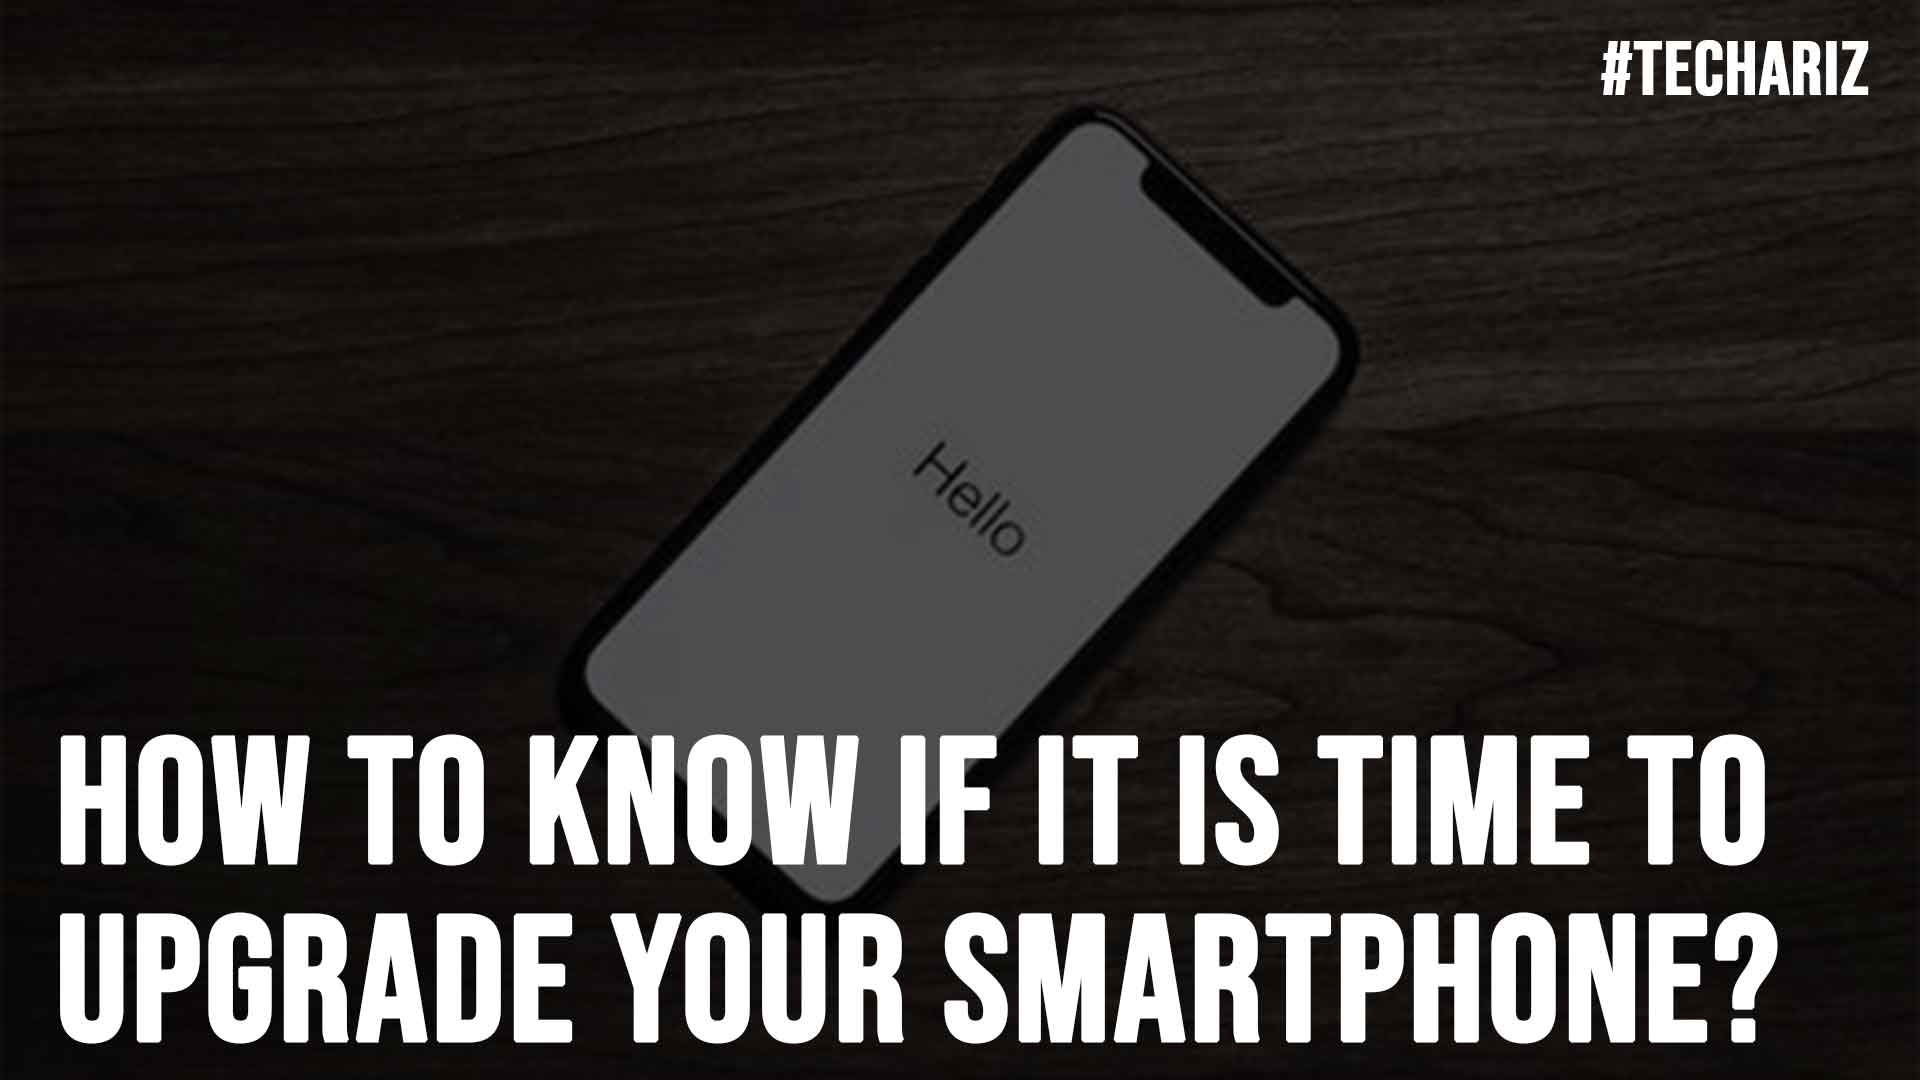 How to Know if it is Time to Upgrade Your Smartphone